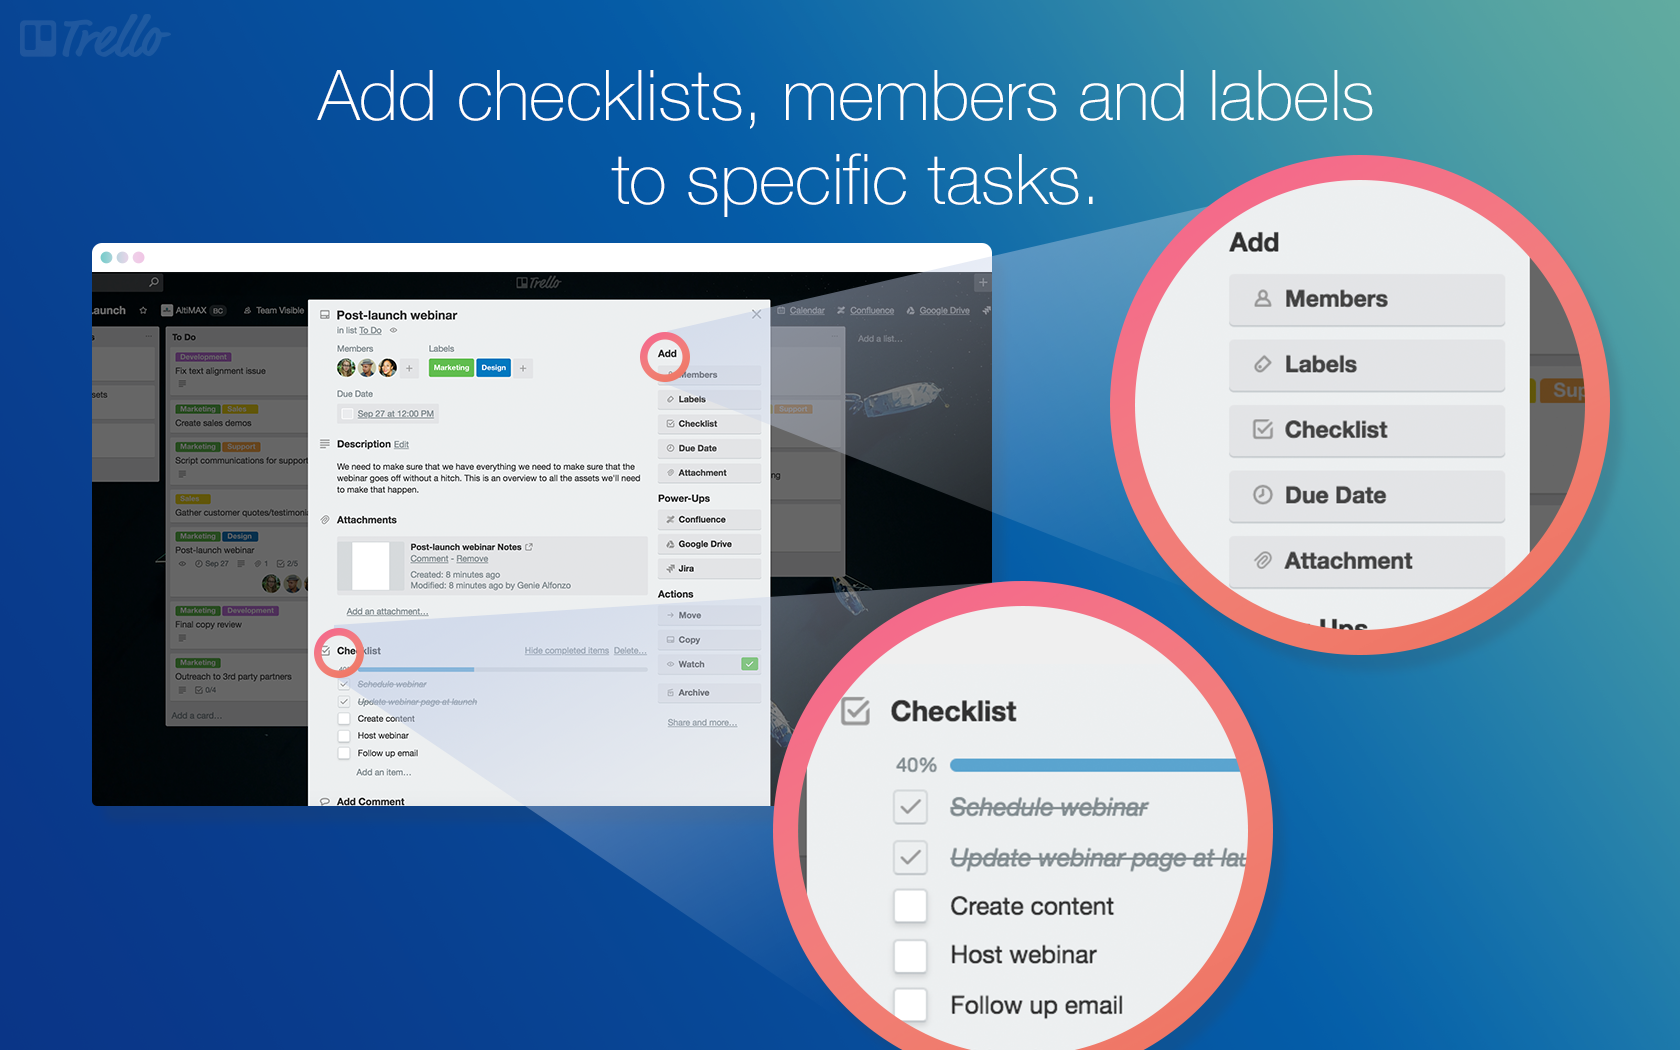 Checklists, members, and labels can be added to individual tasks